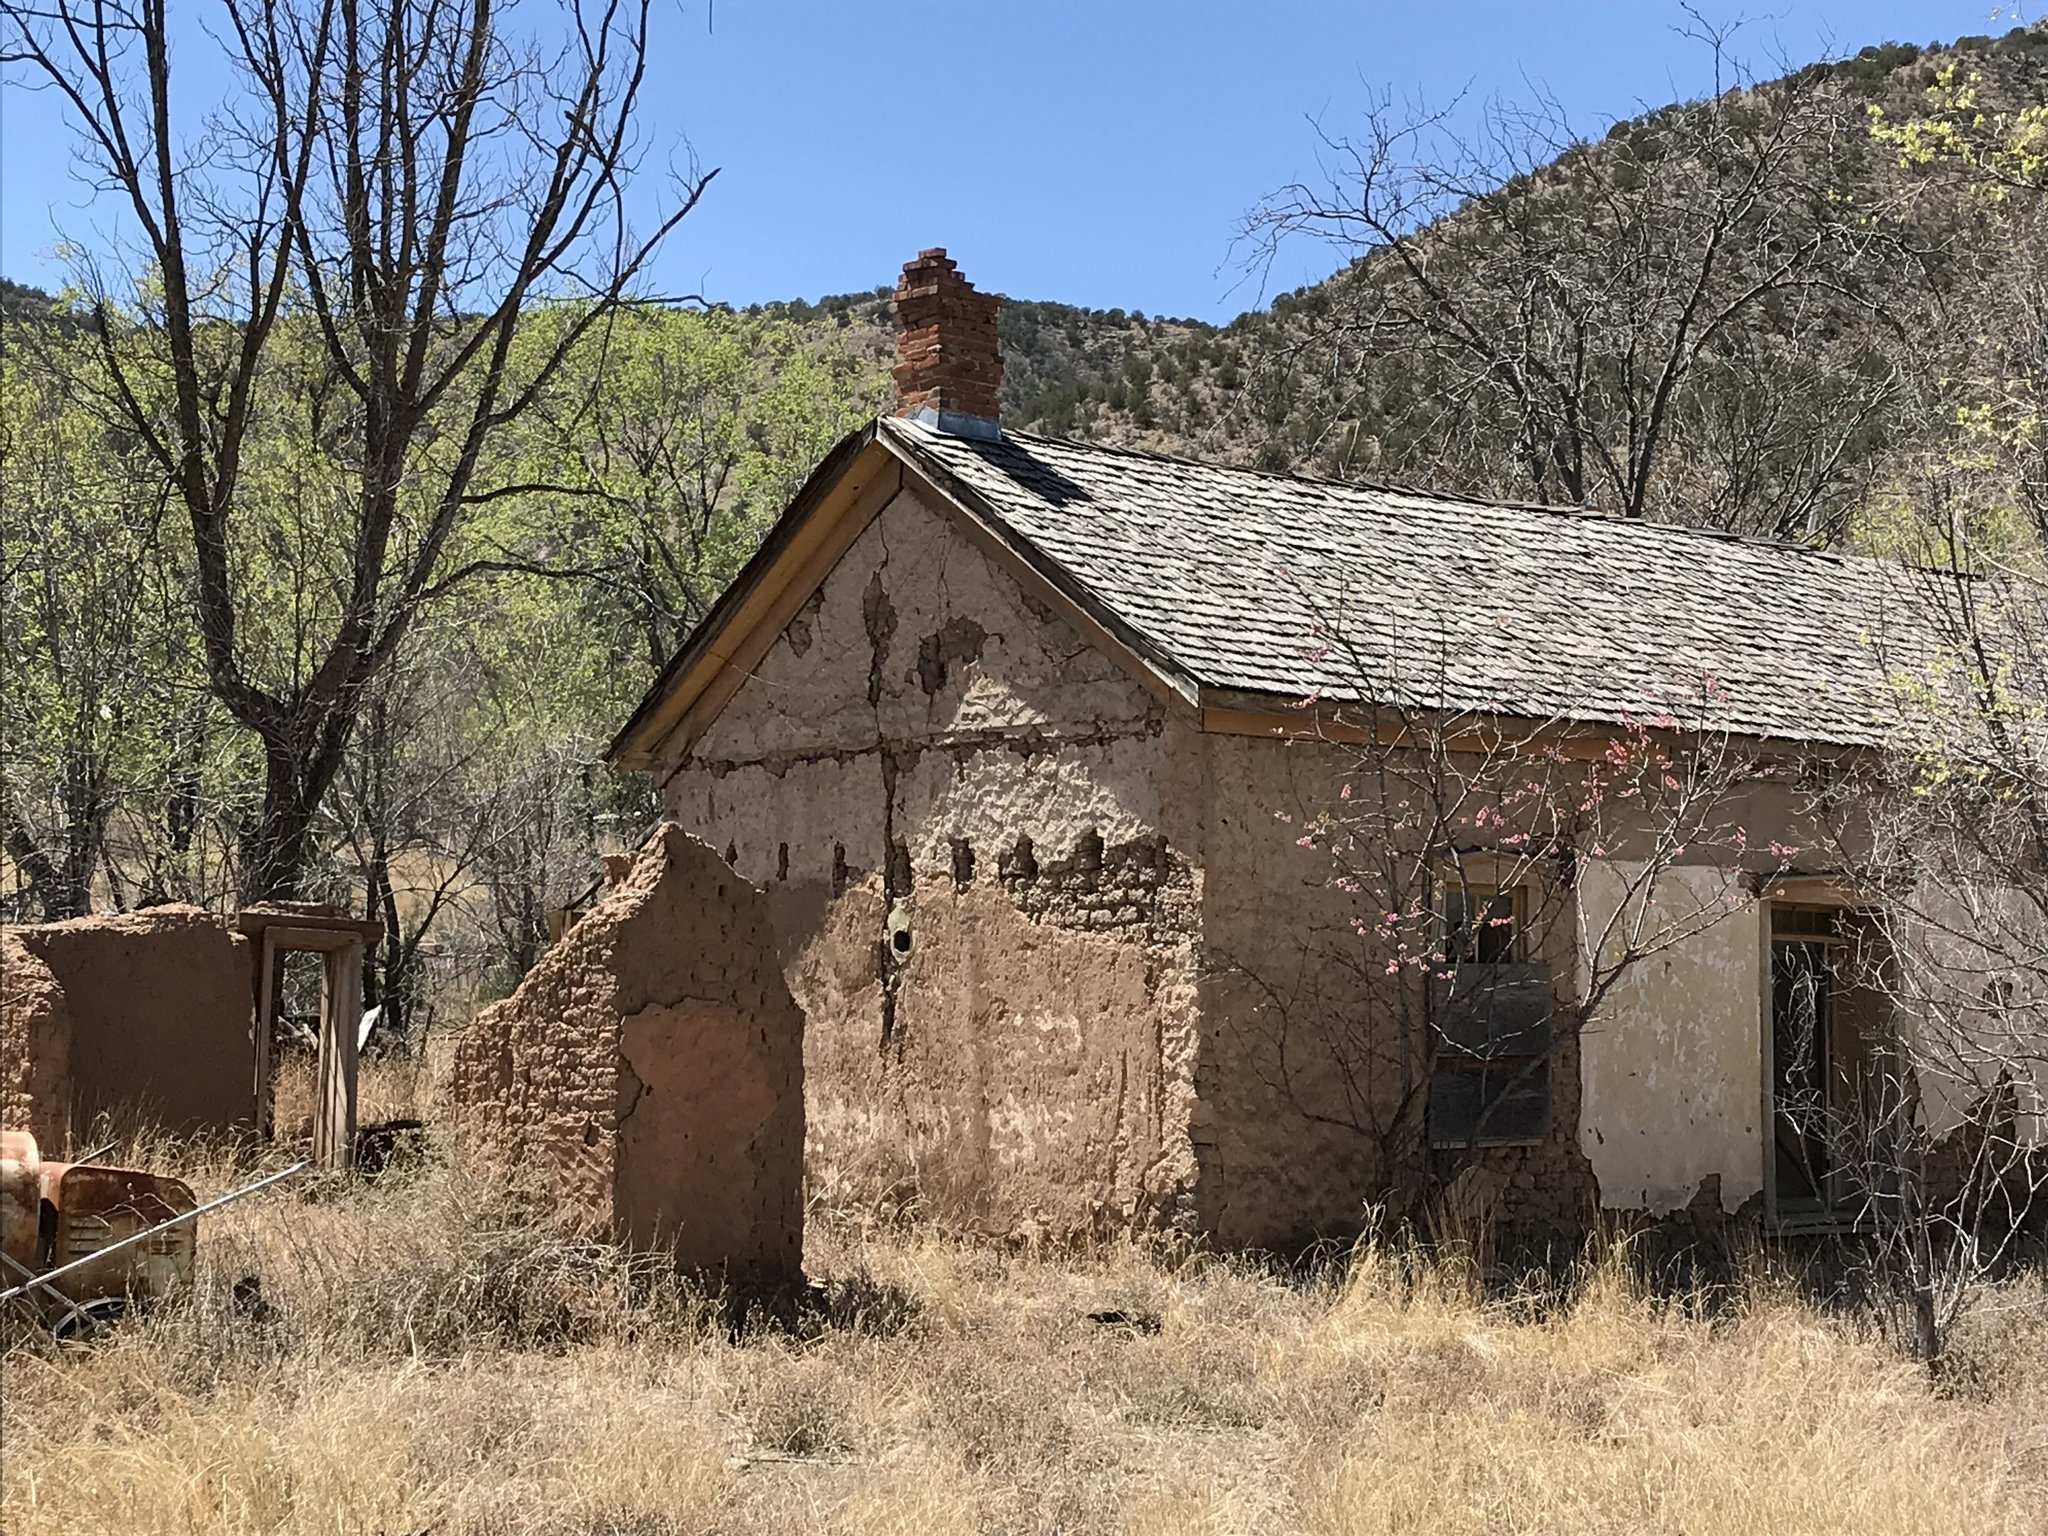 The town of Lincoln is a New Mexico State historic sIte. Some buildings have been restored, some are